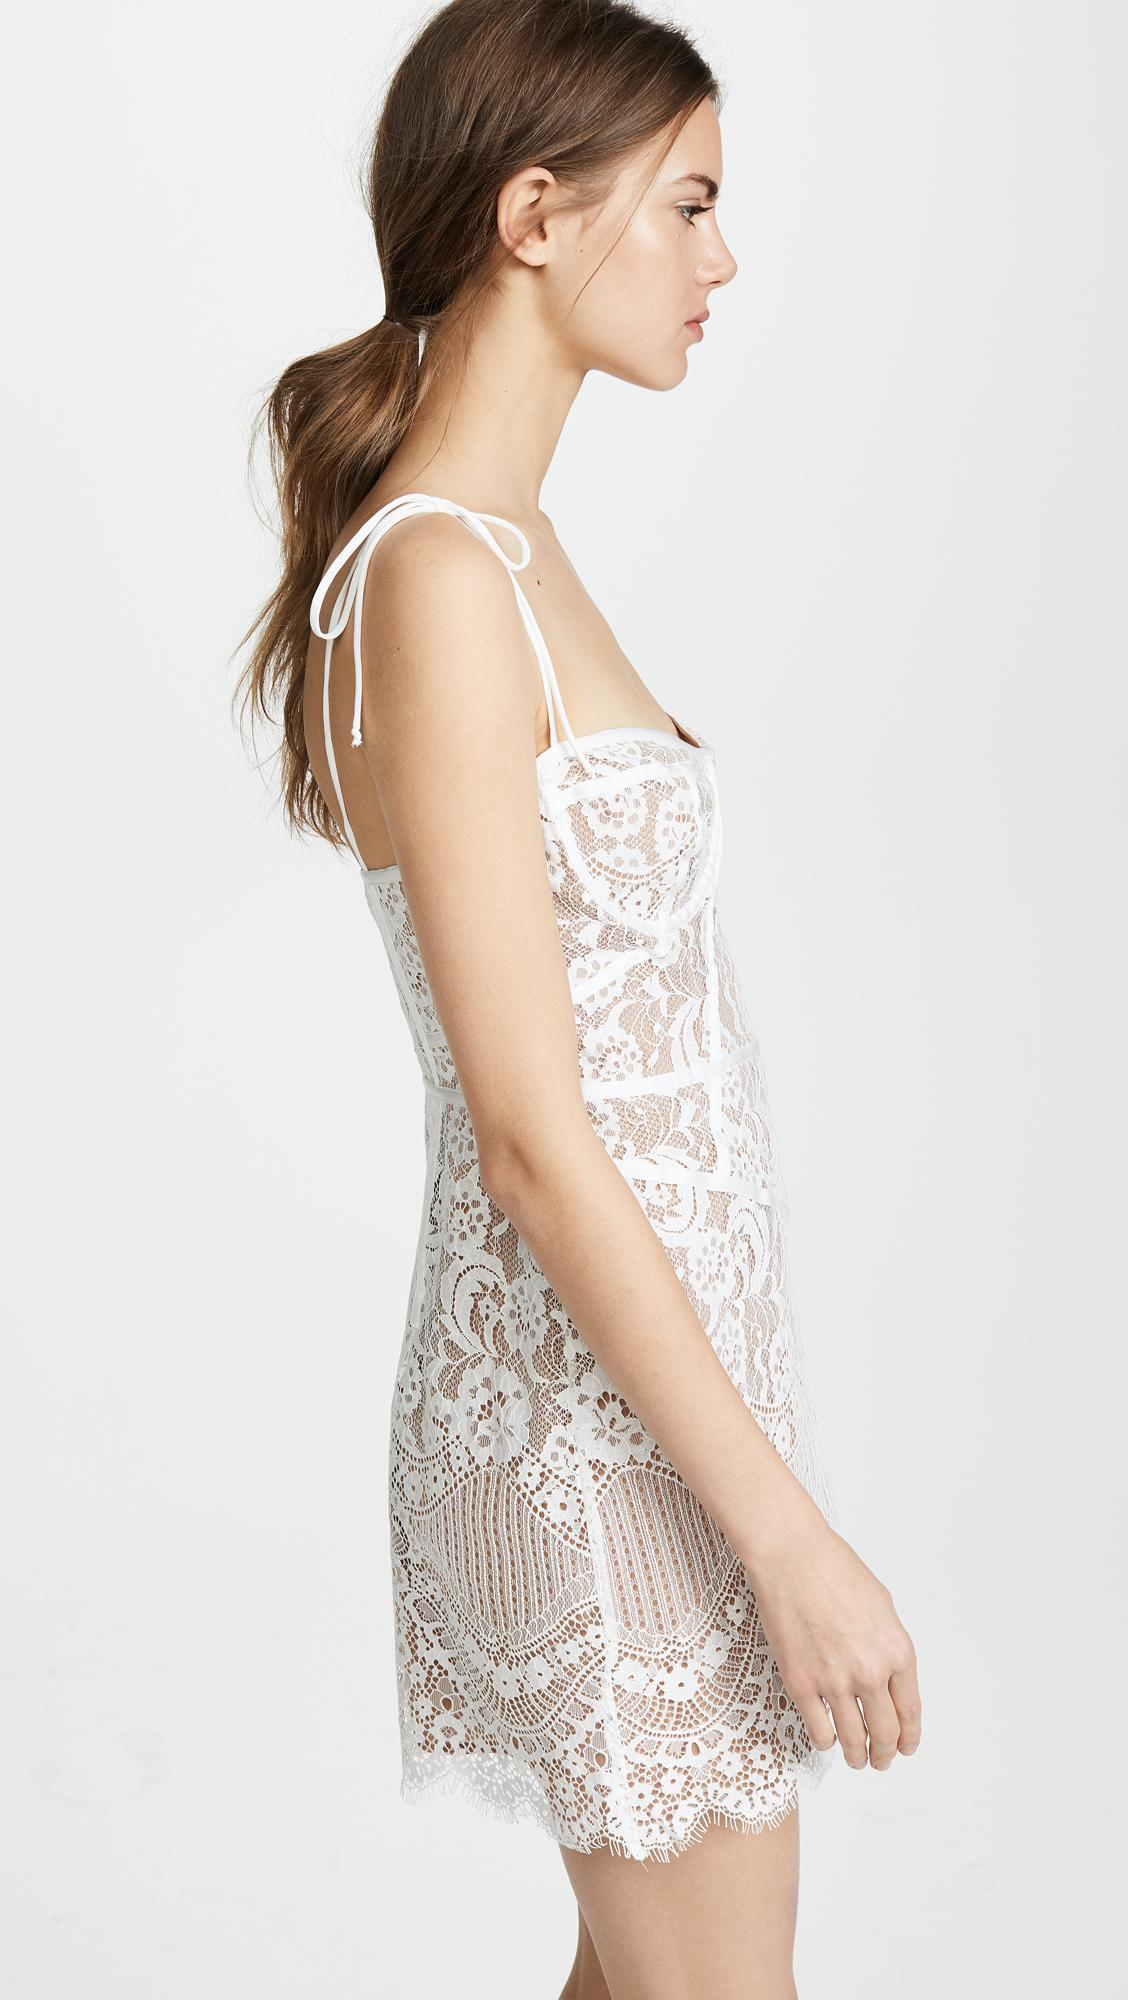 92f1a73a5d91 Gallery. Previously sold at: Shopbop · Women's Lace Dresses Women's White  ...